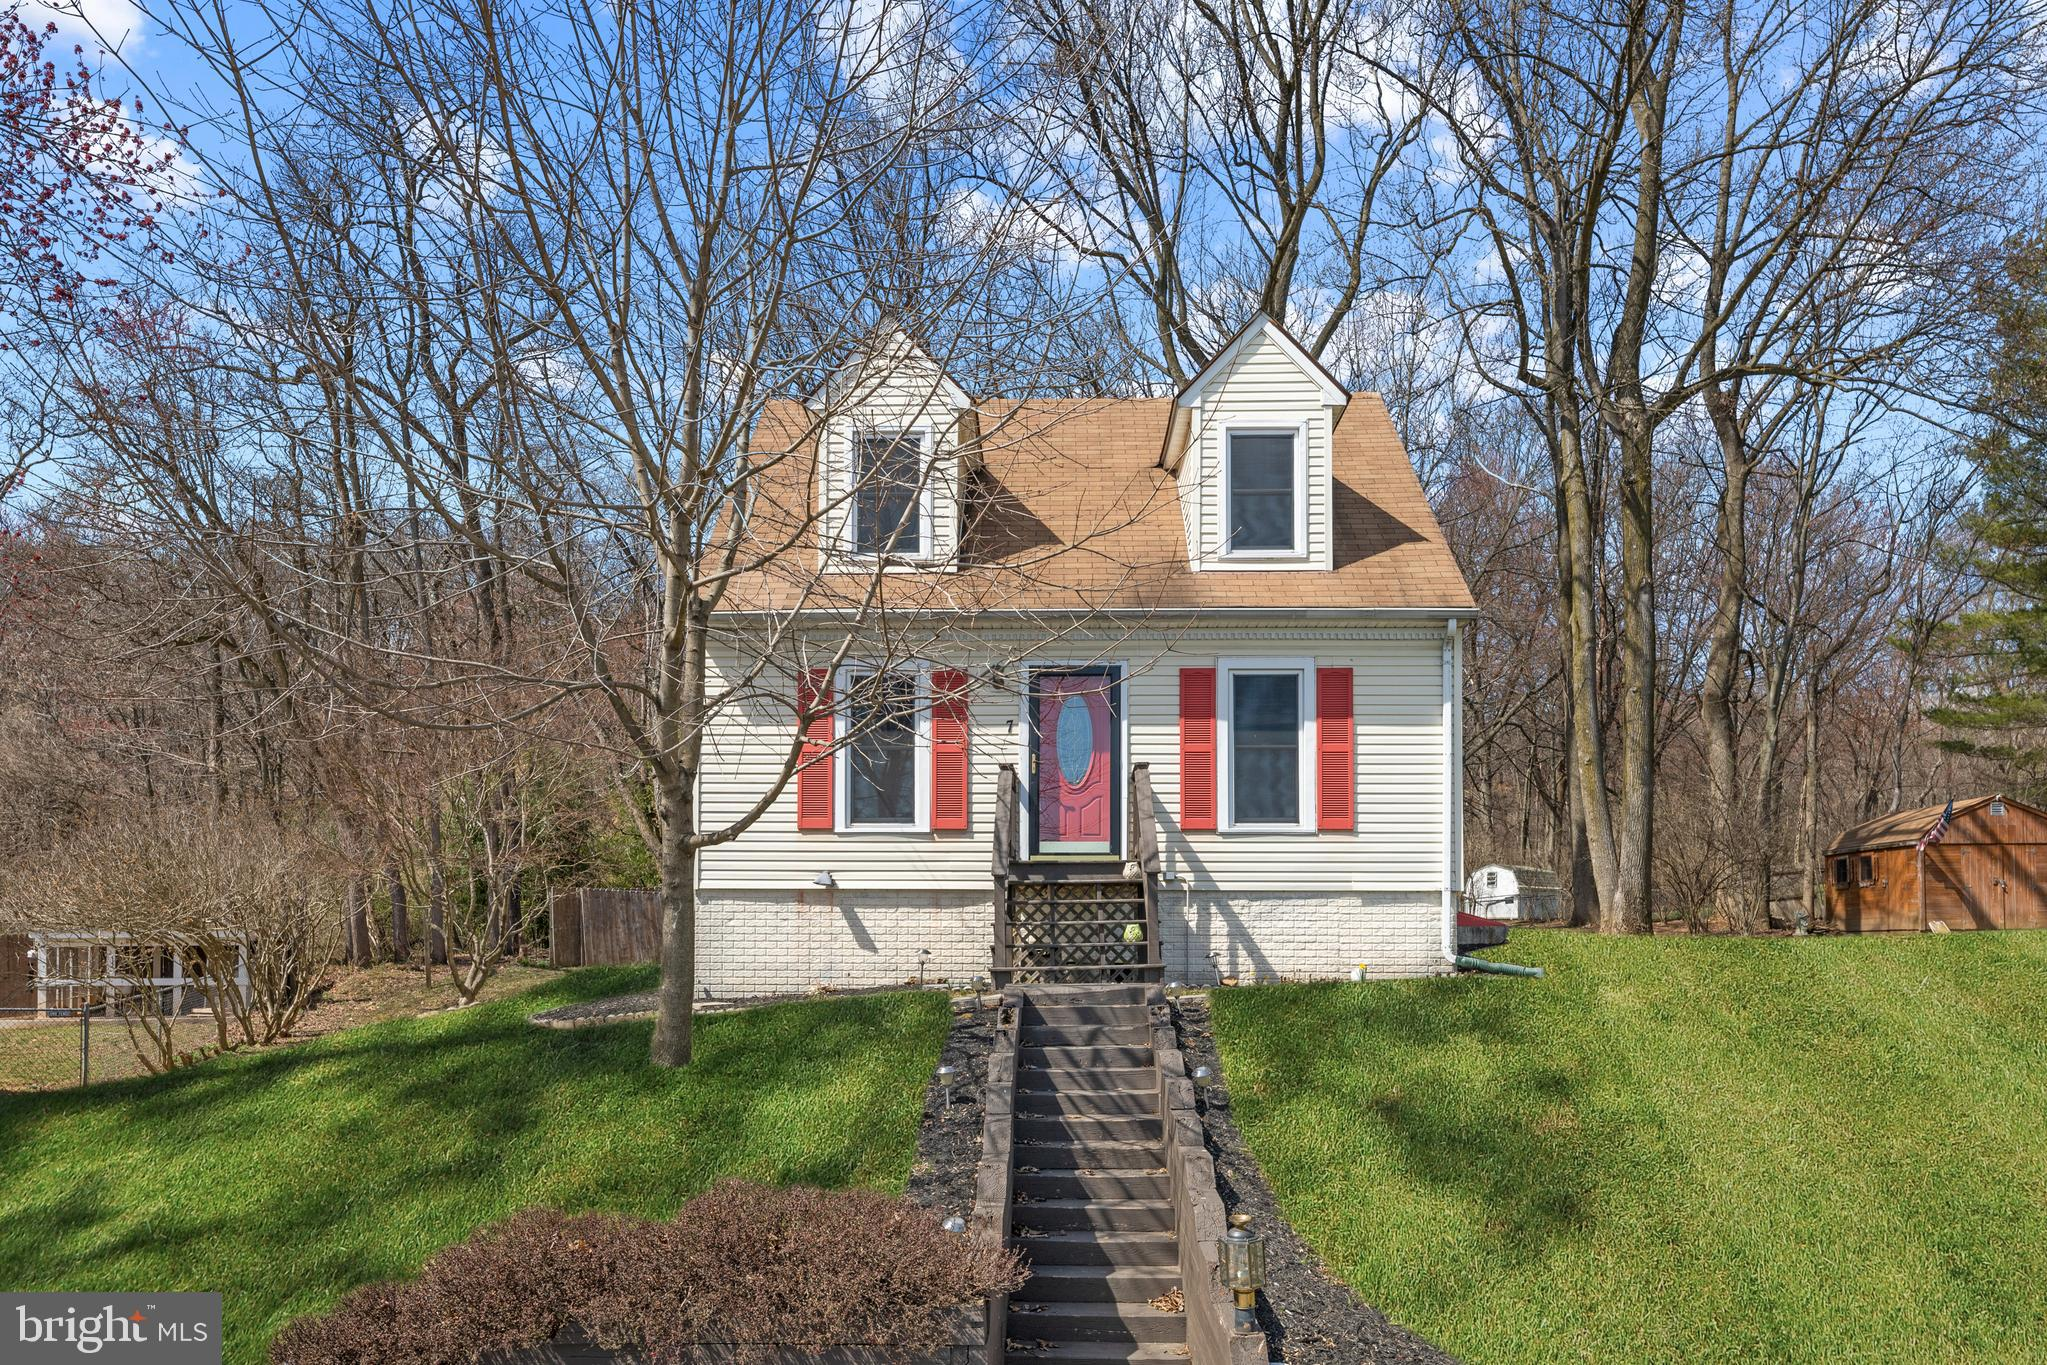 Welcome Home! This adorable 3 bedroom 2 bath Cape Cod is ready for you to move right in! This lovely